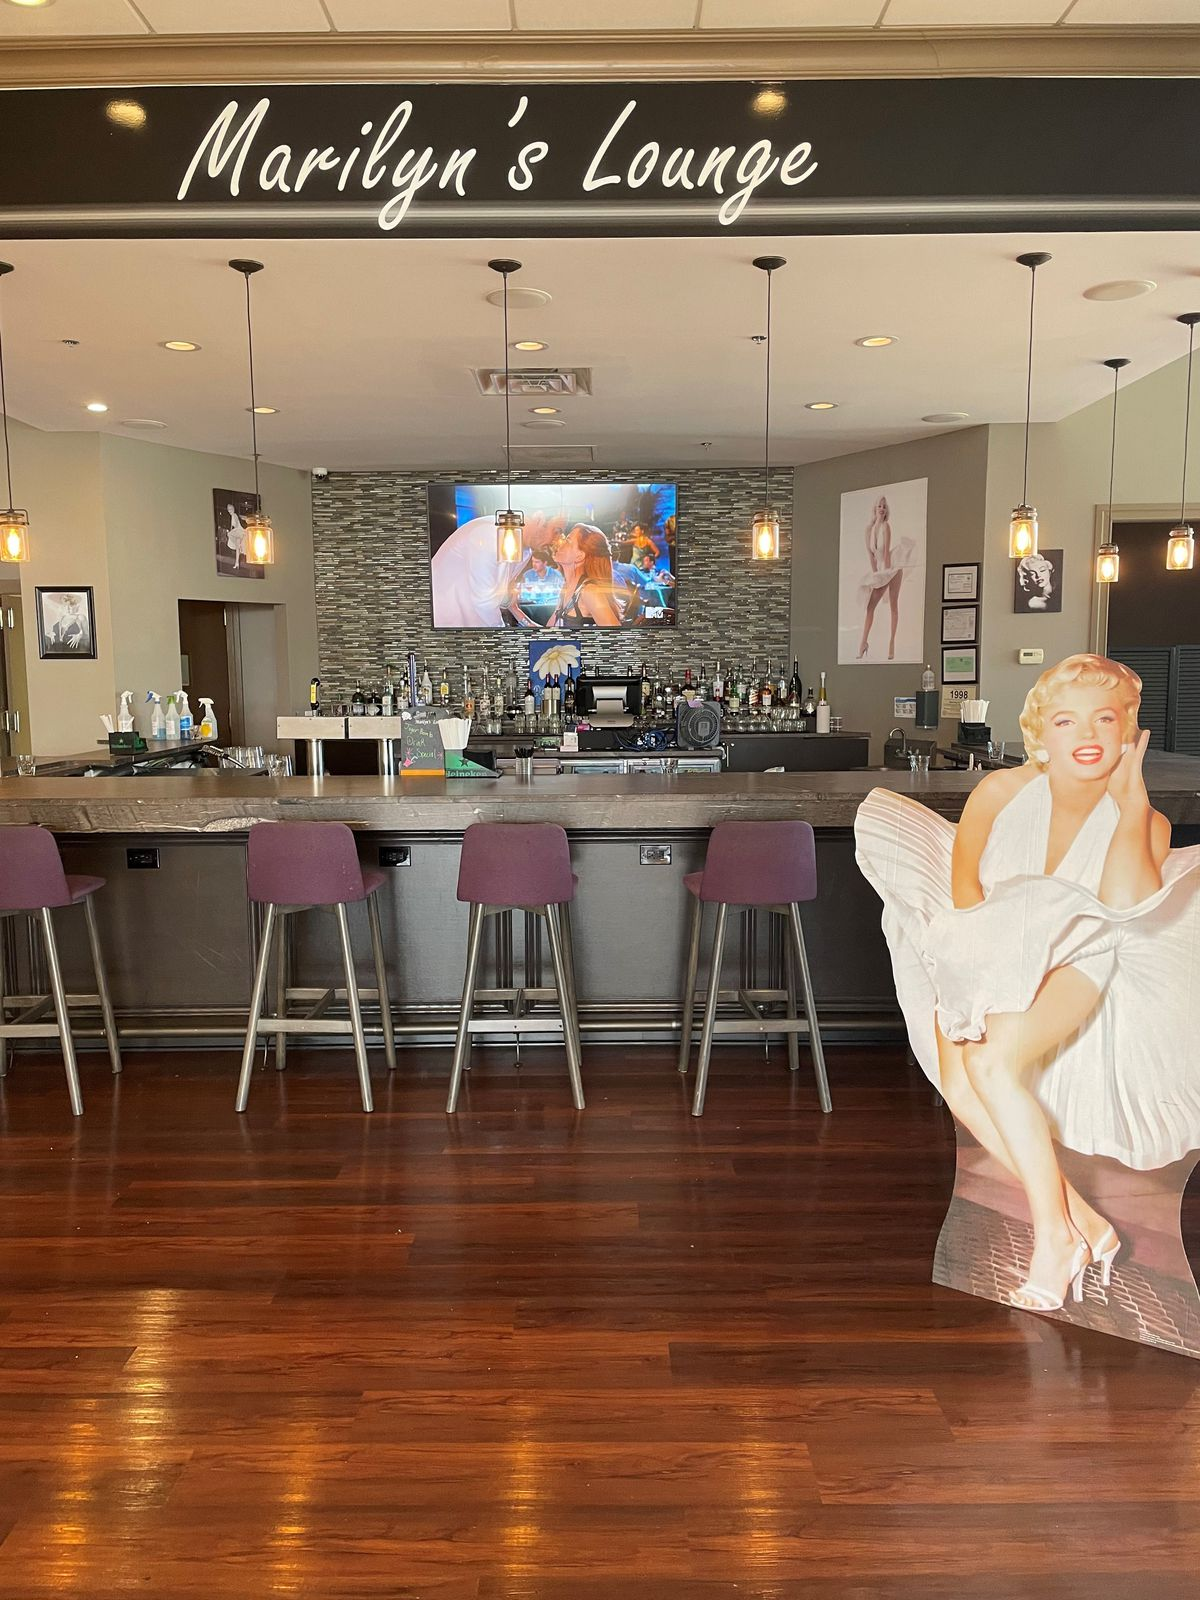 the lounge has a cardboard cutoff of Marilyn Monroe, chairs at a bar and photos of Monroe on the walls surrounding a TV